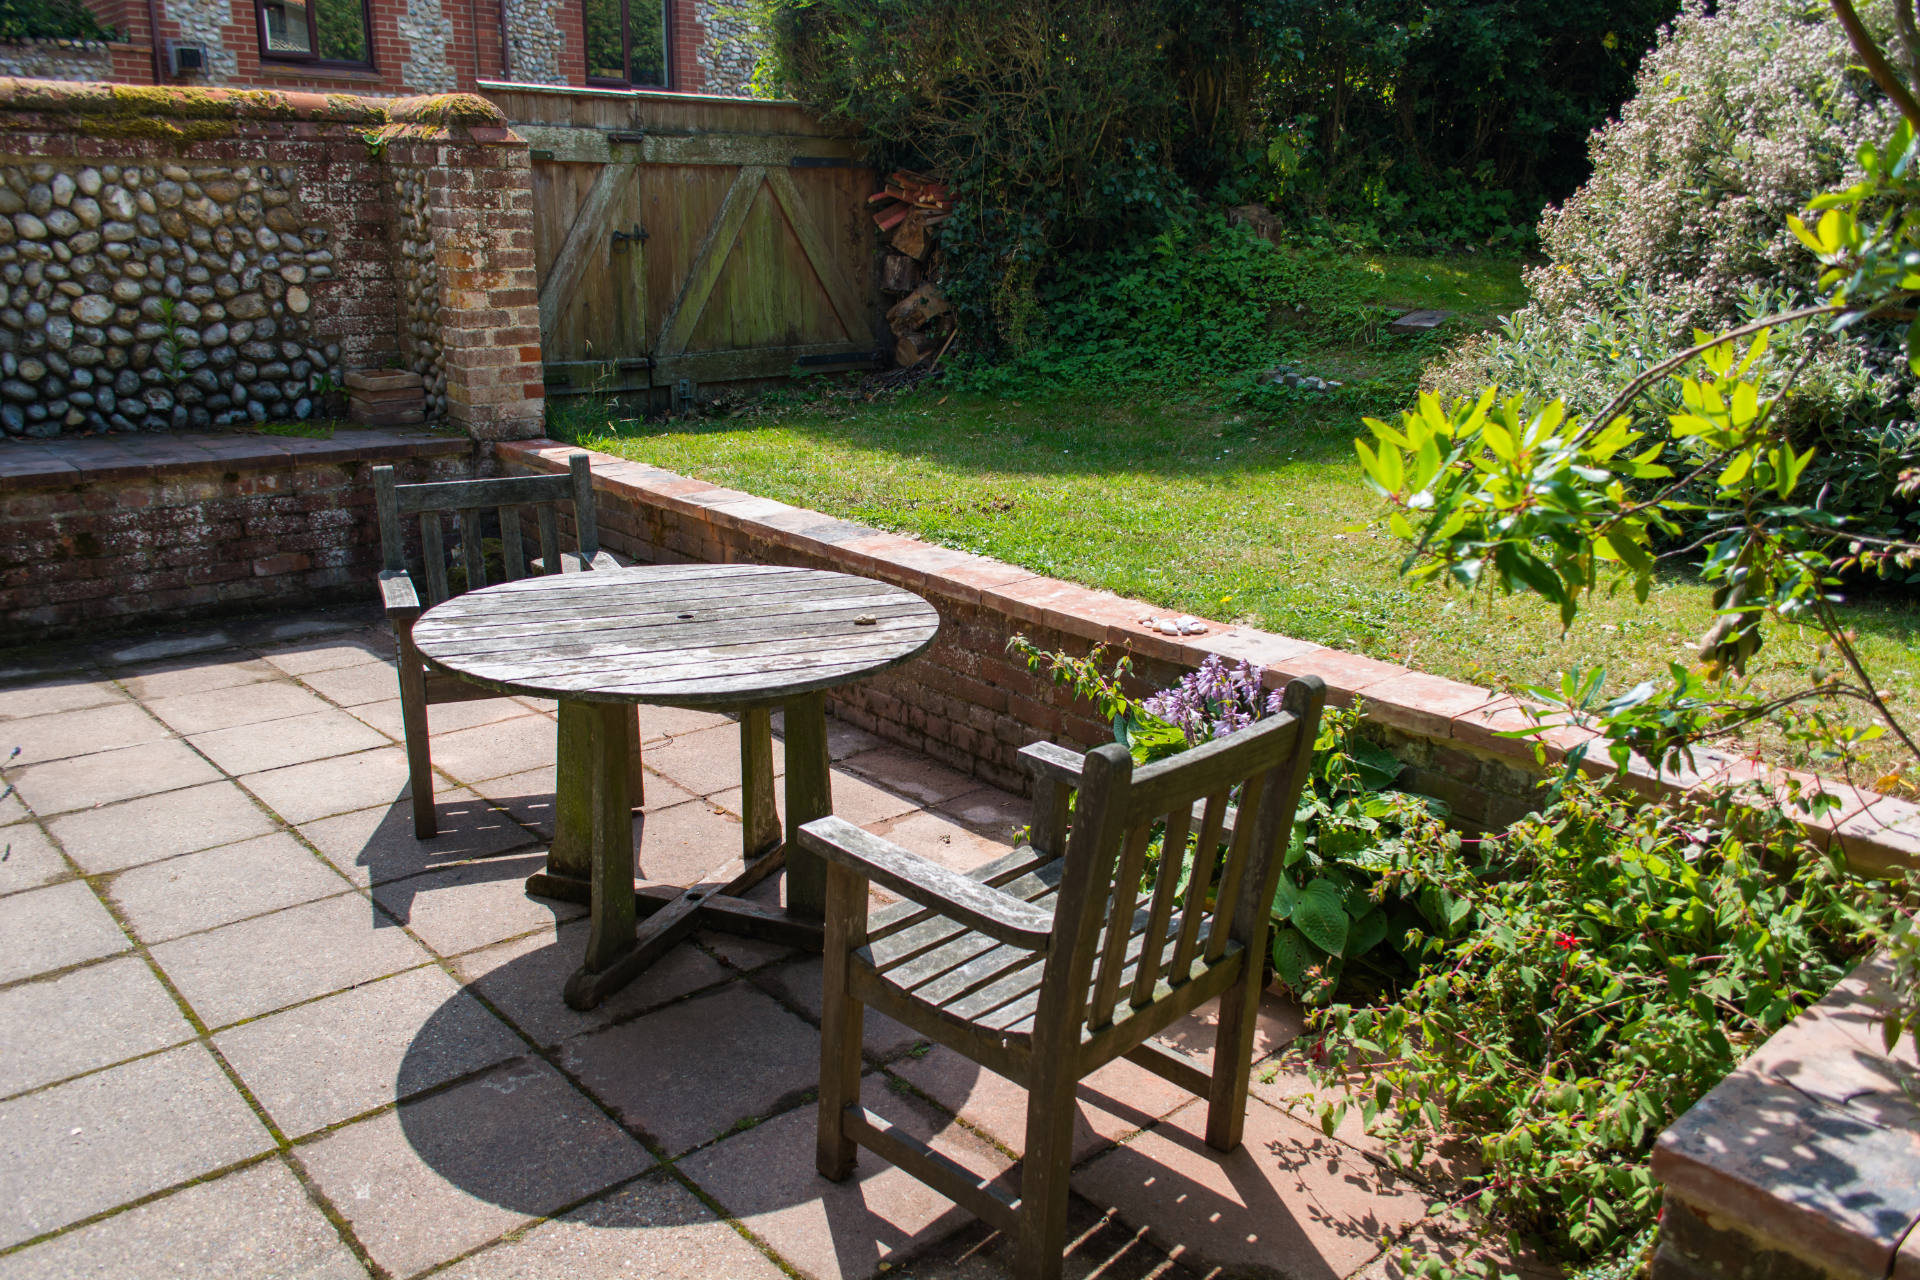 Holiday cottage outside seating area and garden.